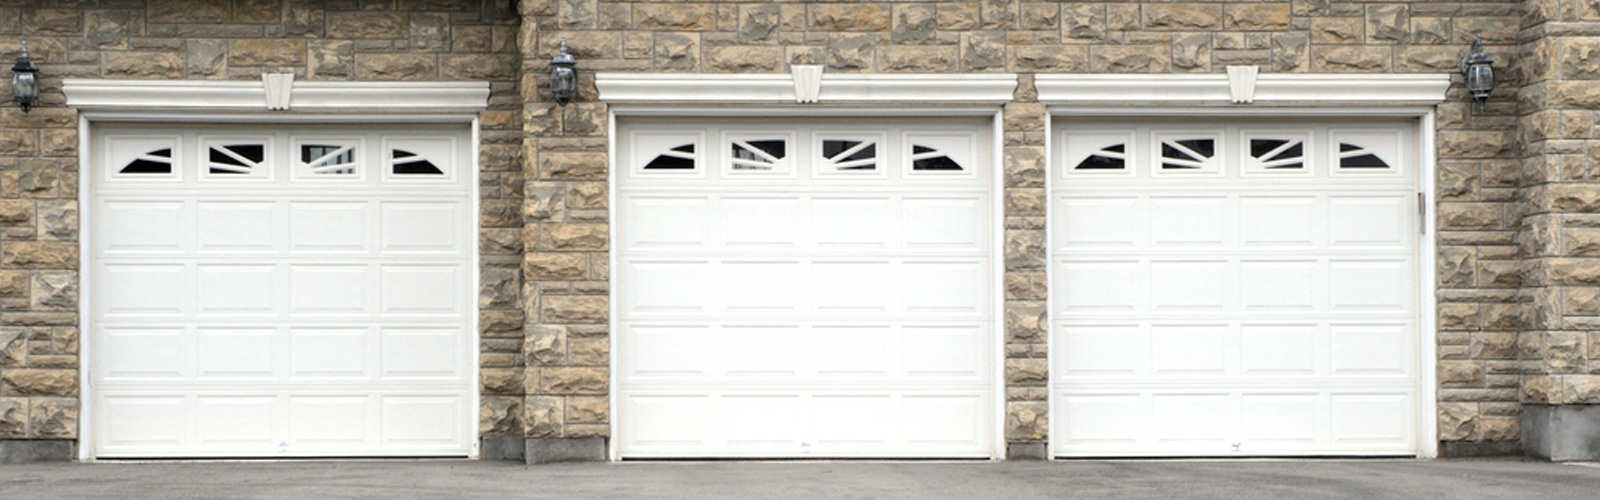 Garage Door Repair Yelp Garage Door Repair Renton Igd Call 425 533 0350